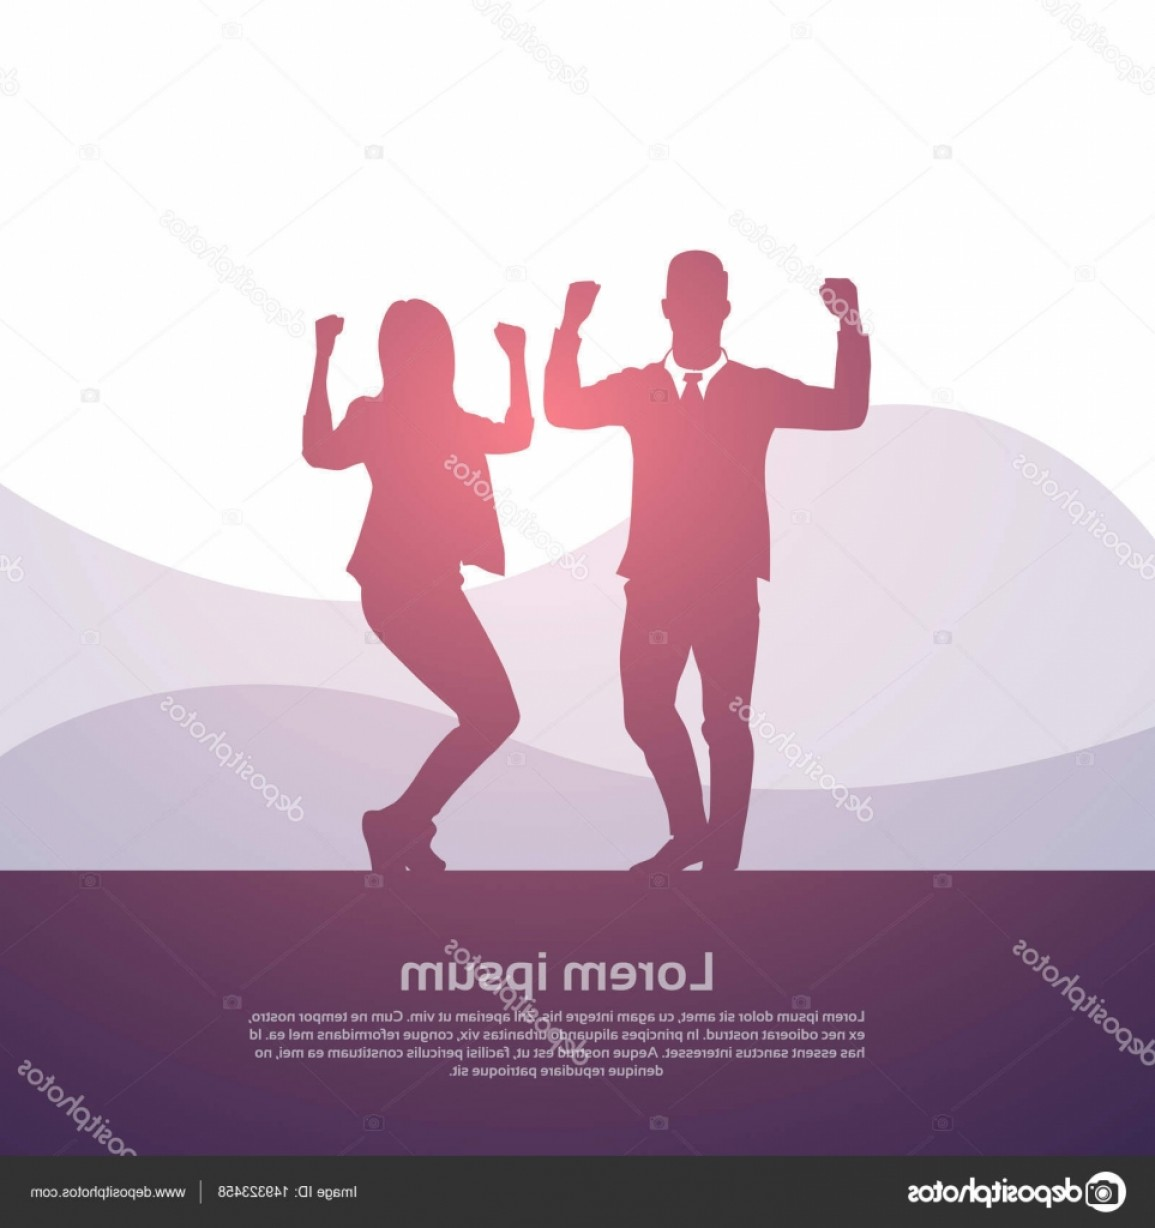 Holding Hands Up Silhouette Vector: Stock Illustration Business People Group Silhouette Excited